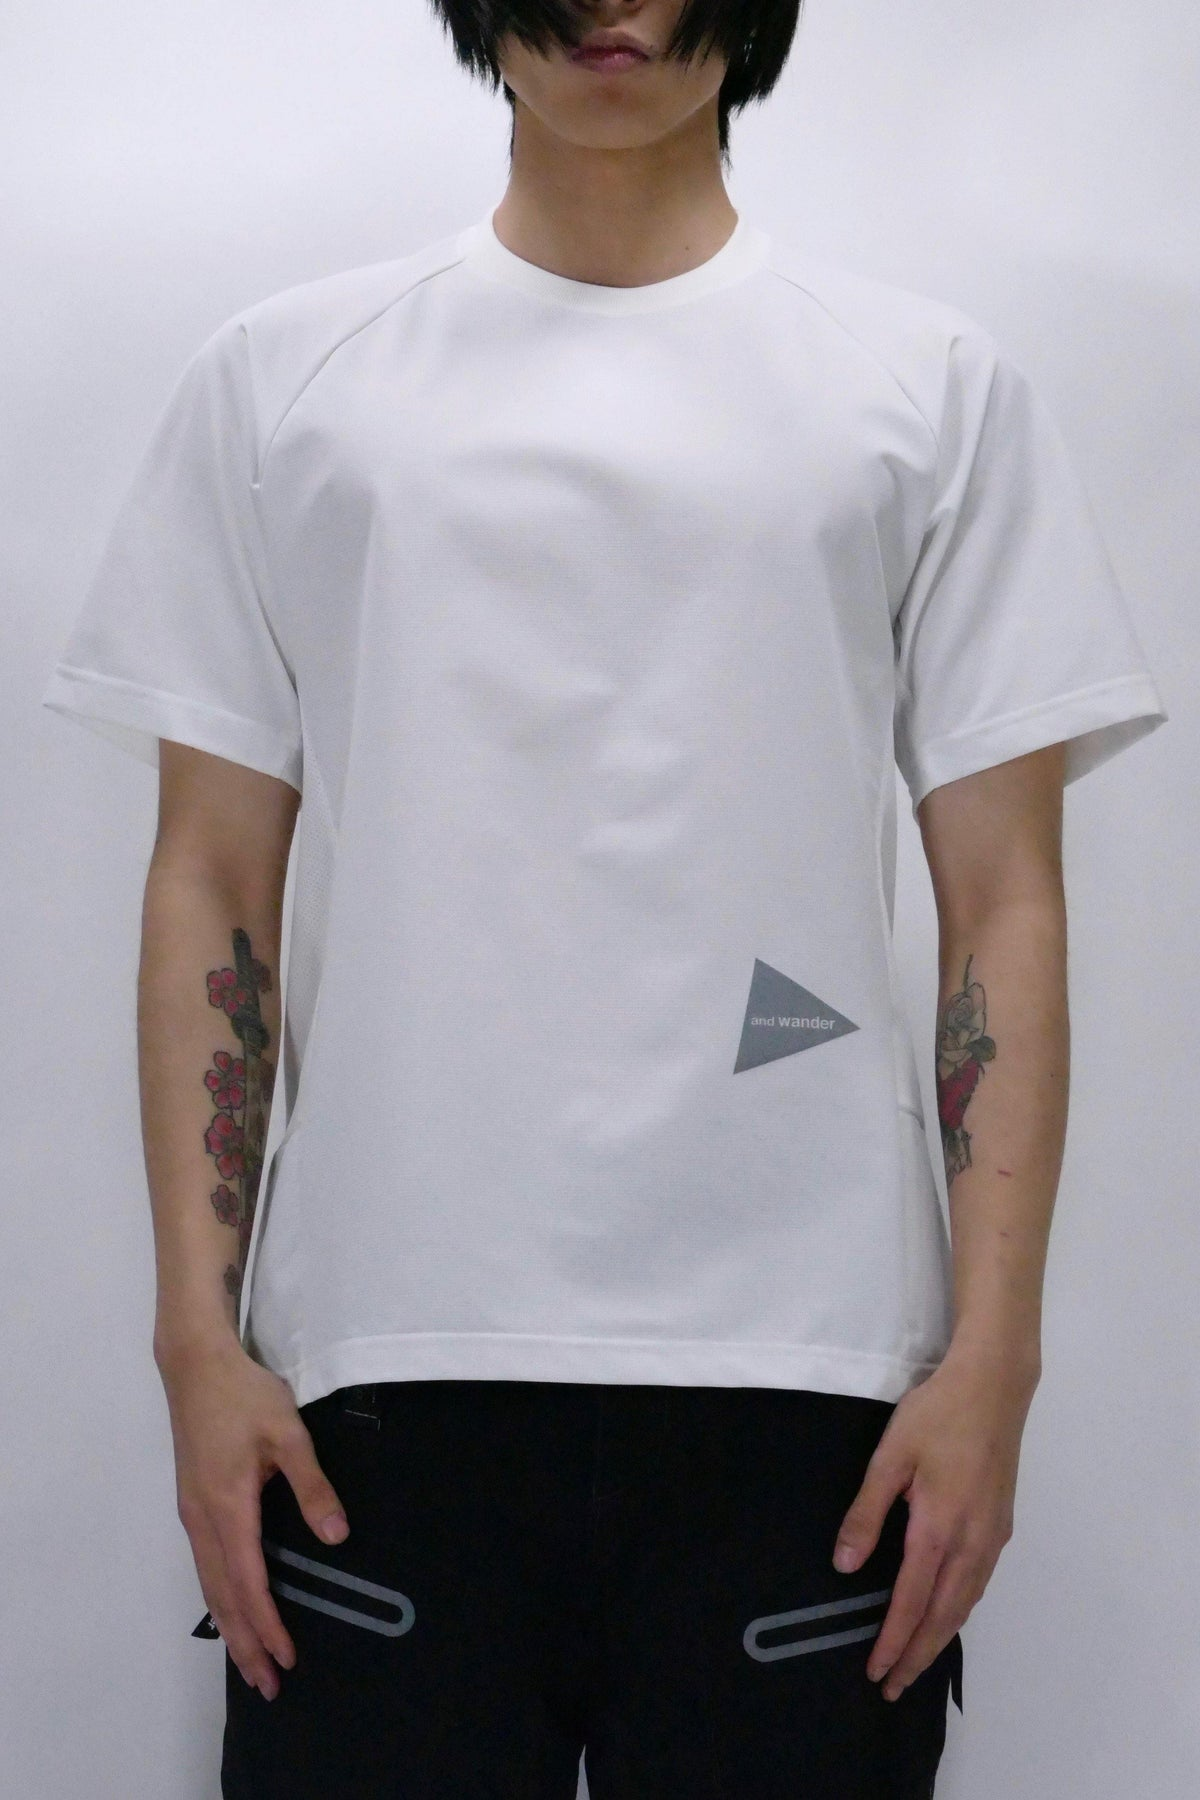 and wander Hybrid Base Layer Tee - White